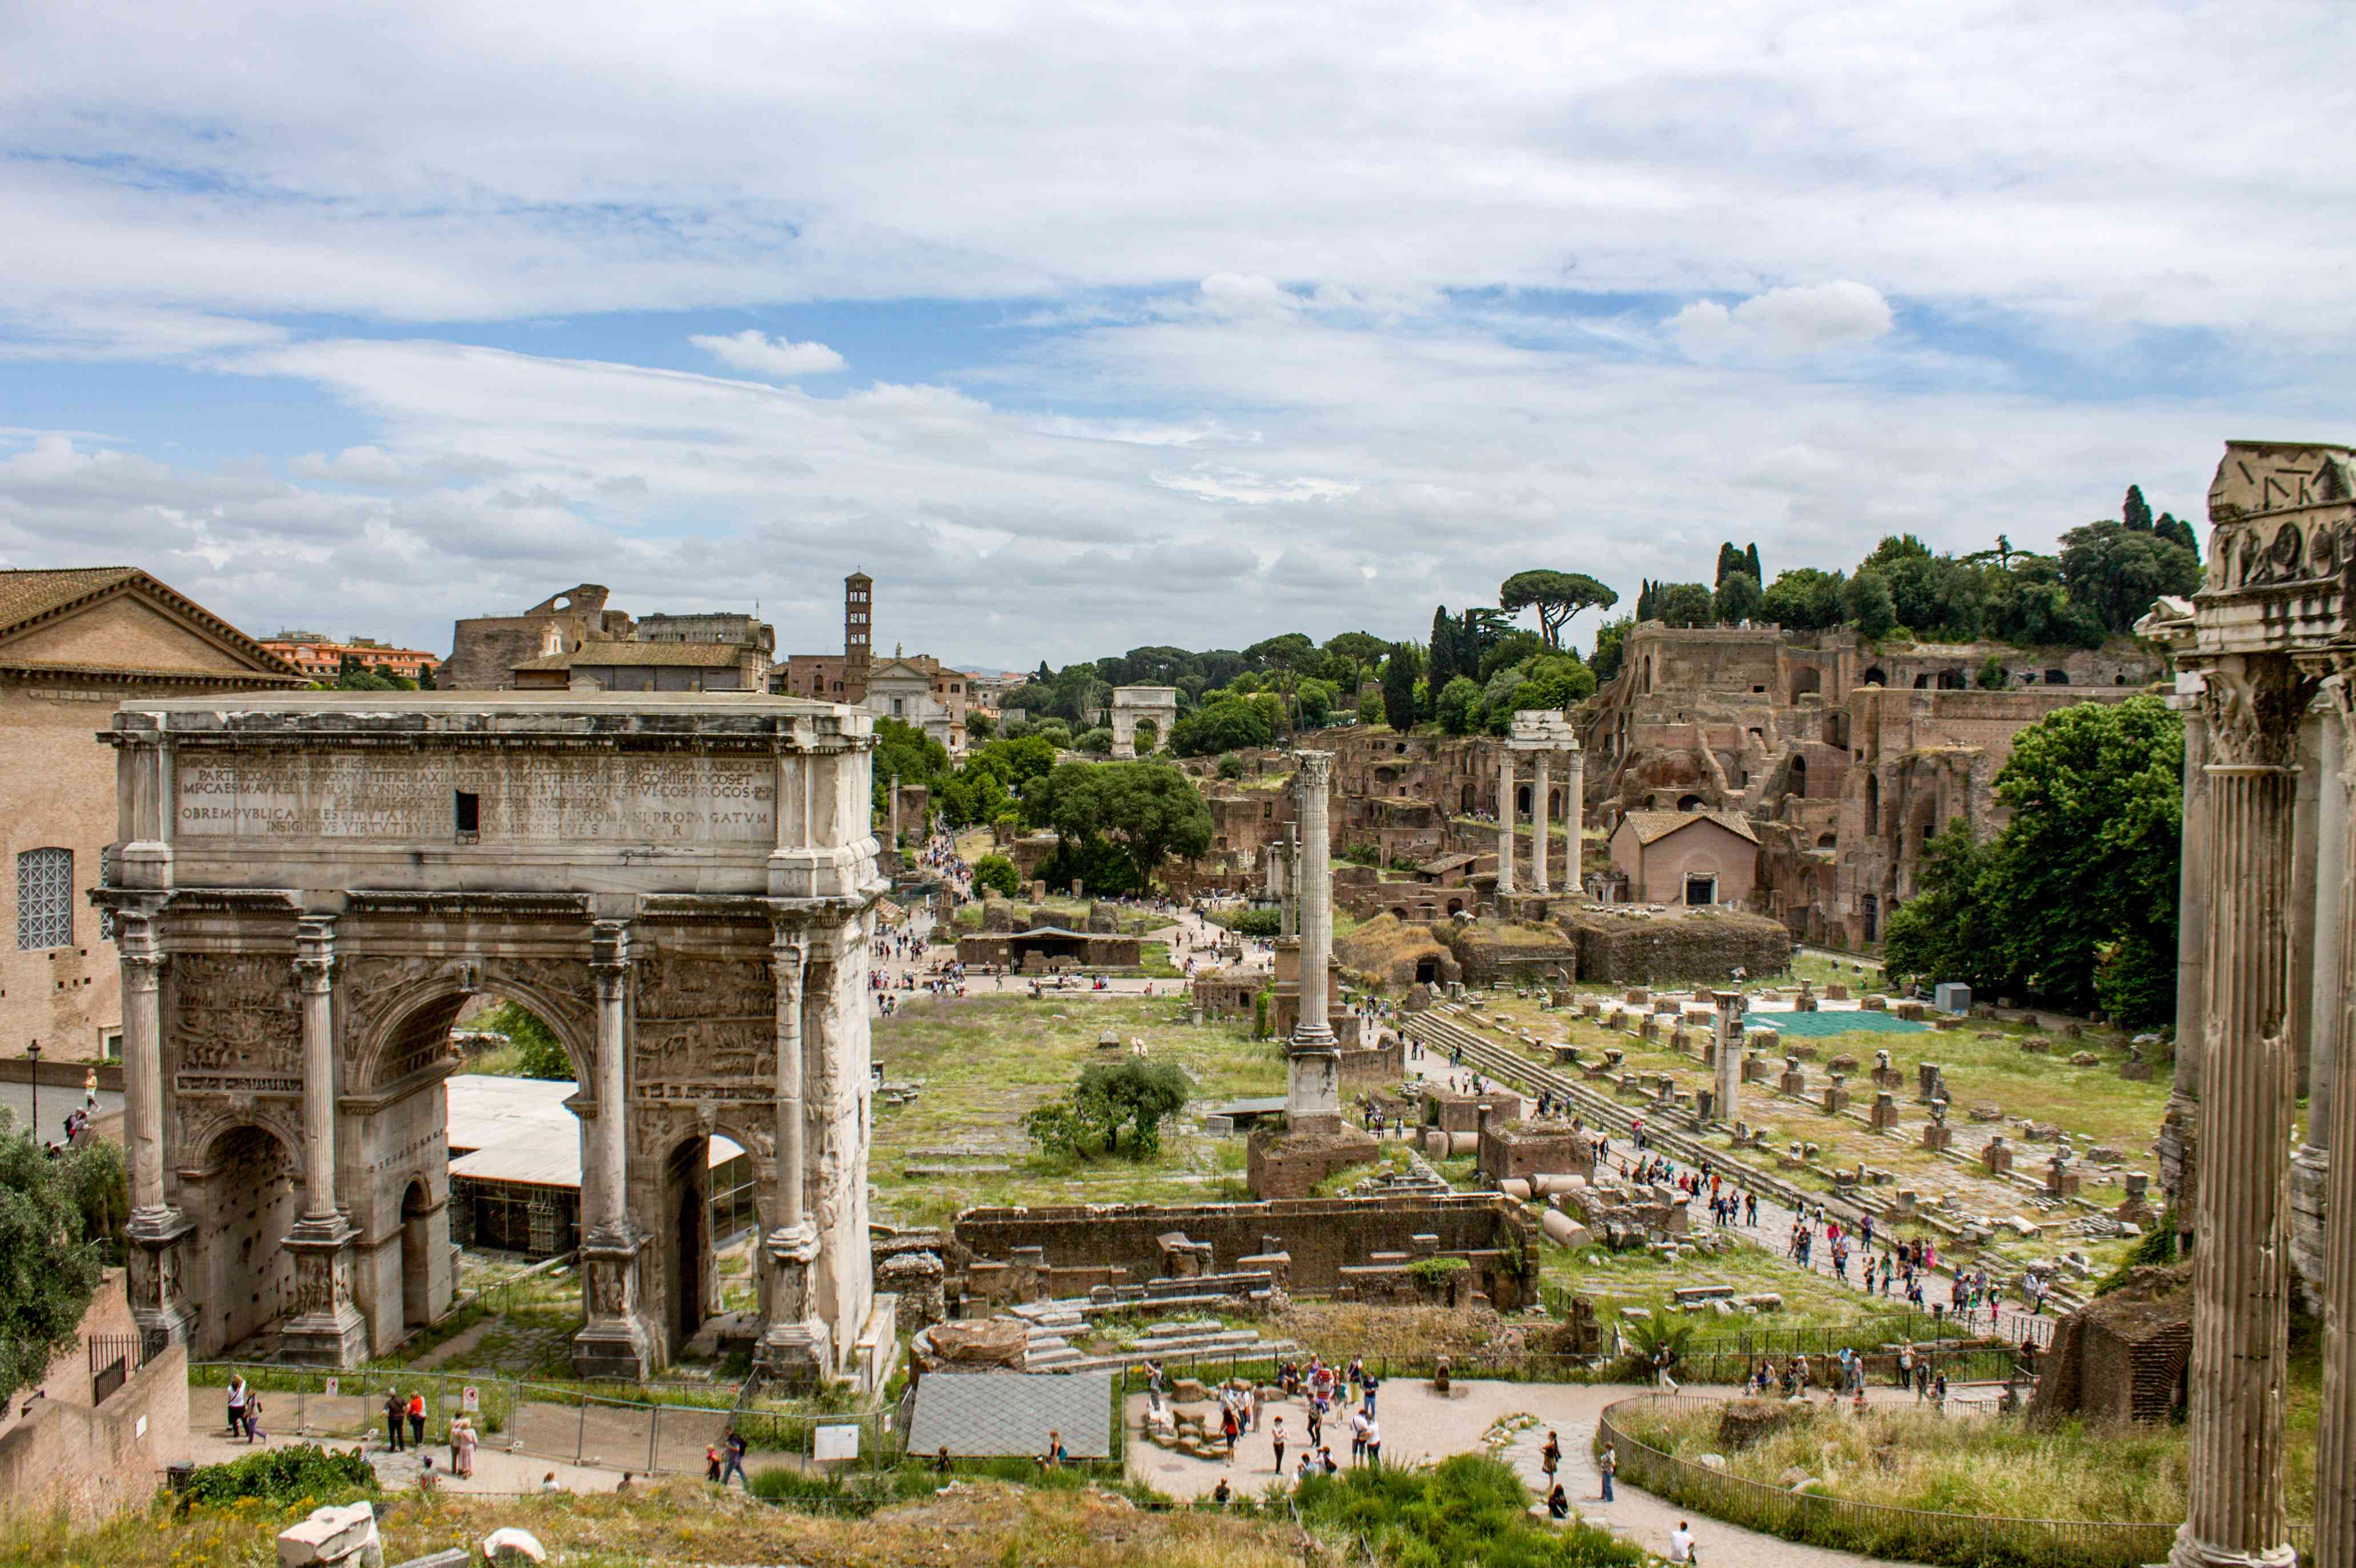 Looking down on a walkway through Palatine Hill seeing ancient roman ruins